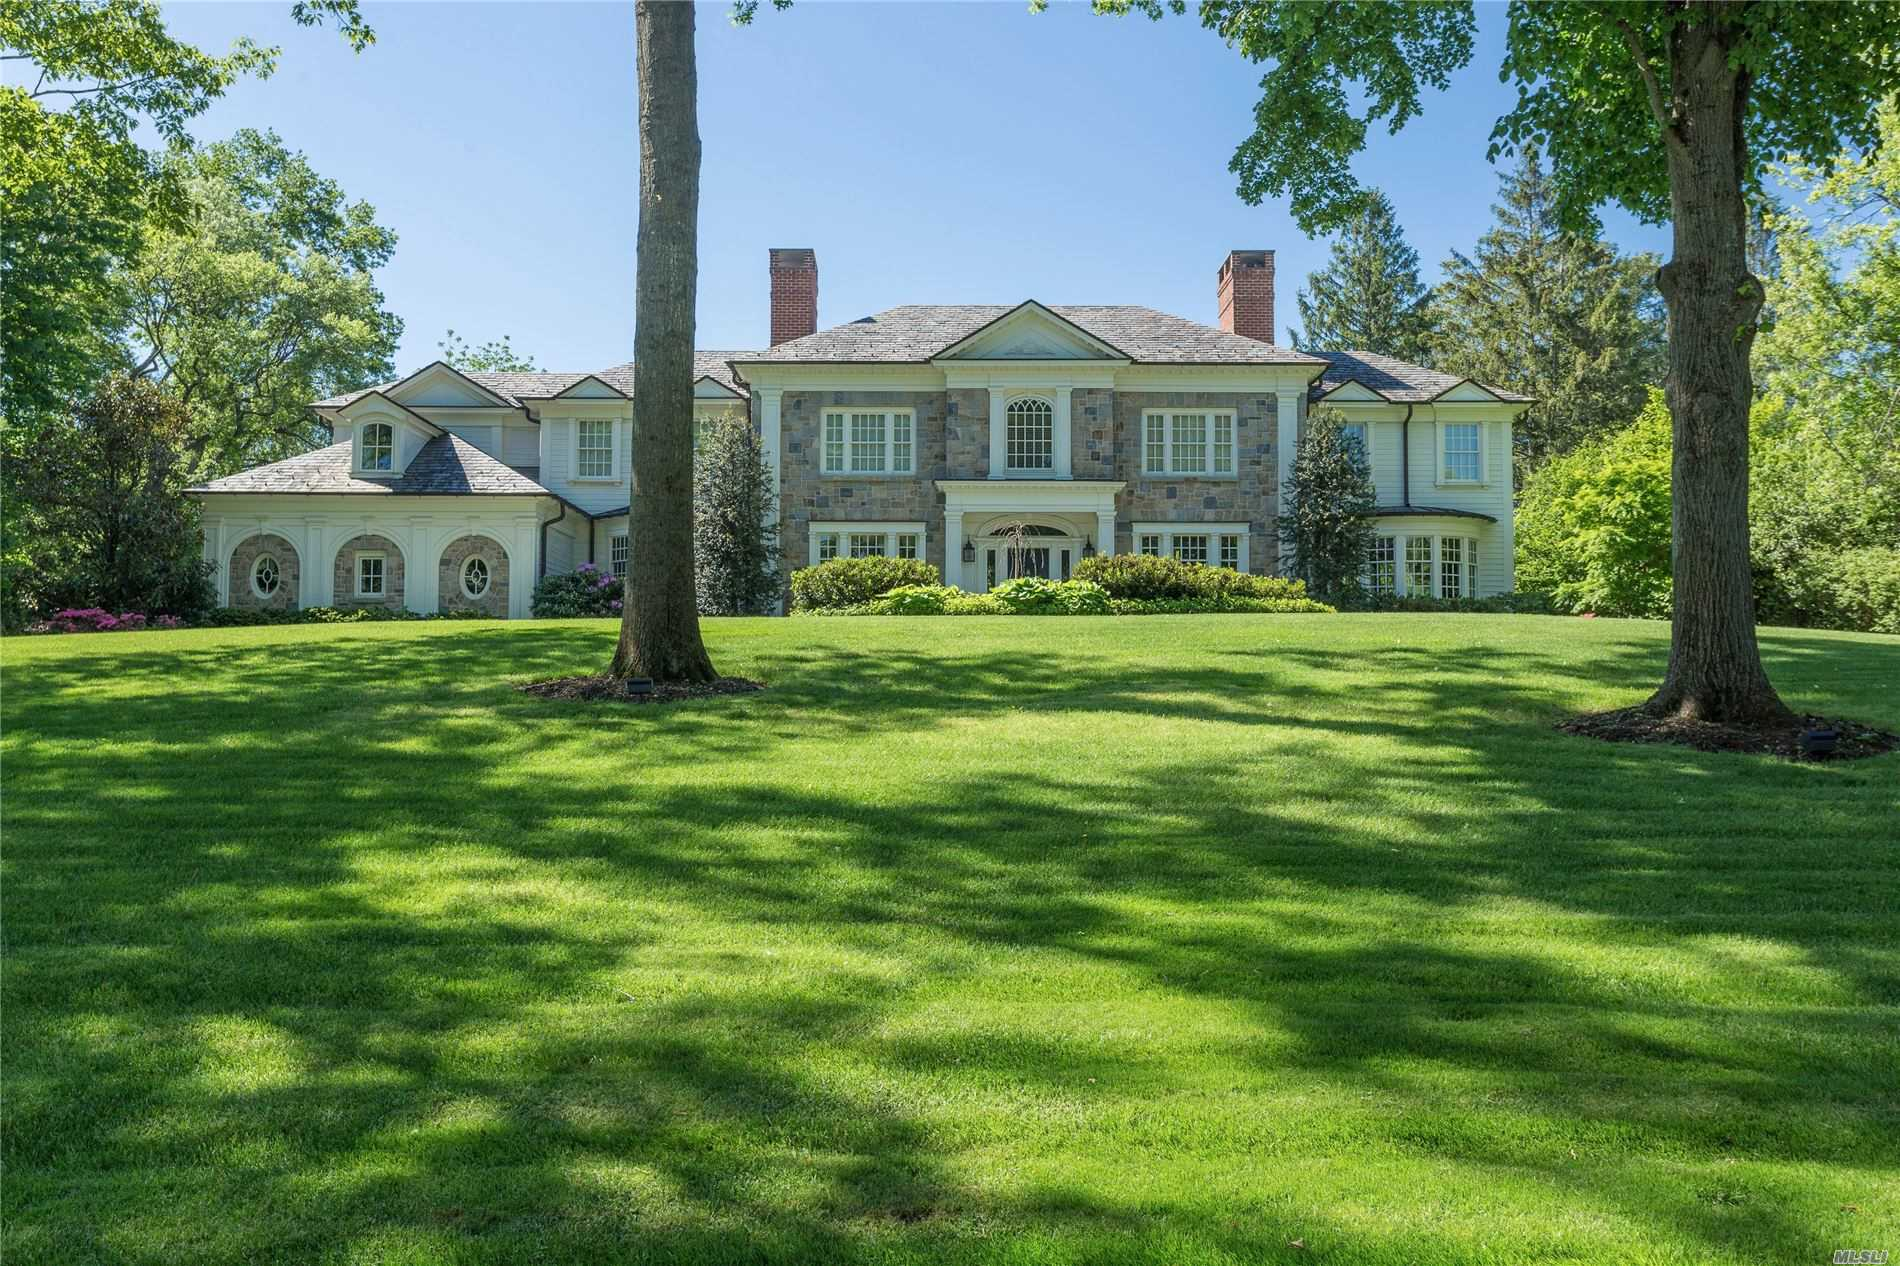 Photo of home for sale at 260 Elderfields Rd, Manhasset NY